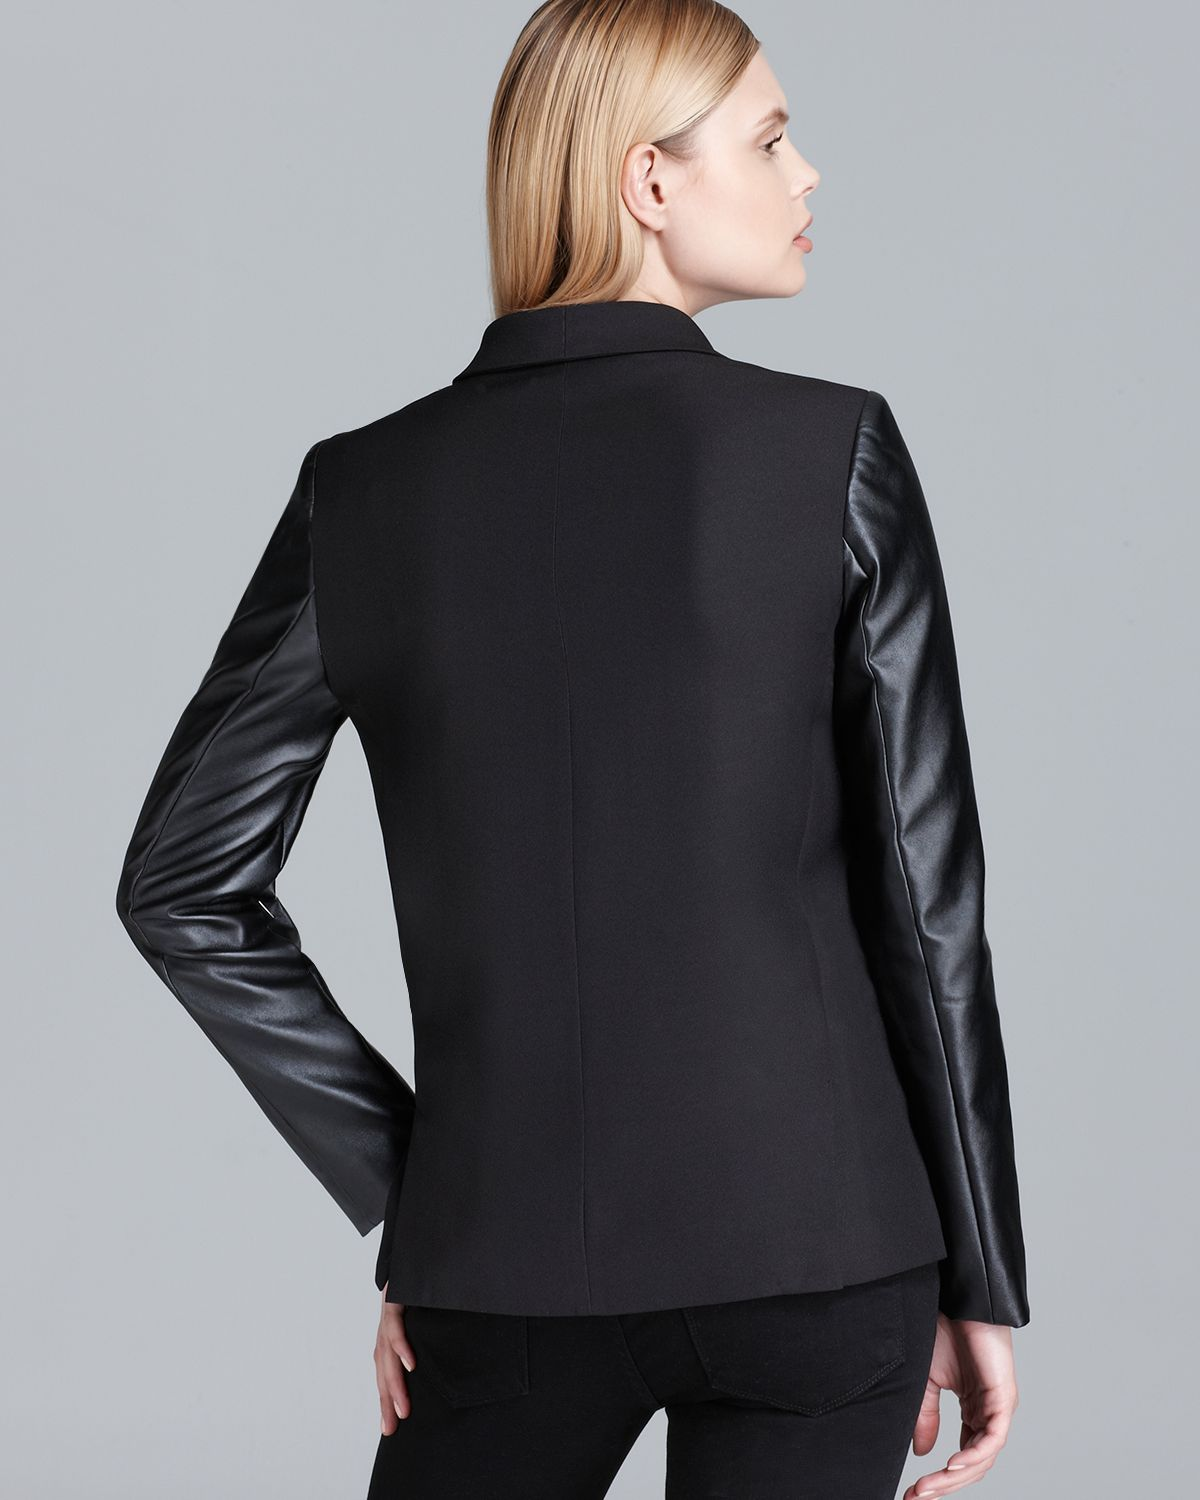 Sleek faux-leather sleeves make this sophisticated Dkny jacket a modern statement-maker, whether paired with a skirt for the office or with denim on the weekend.